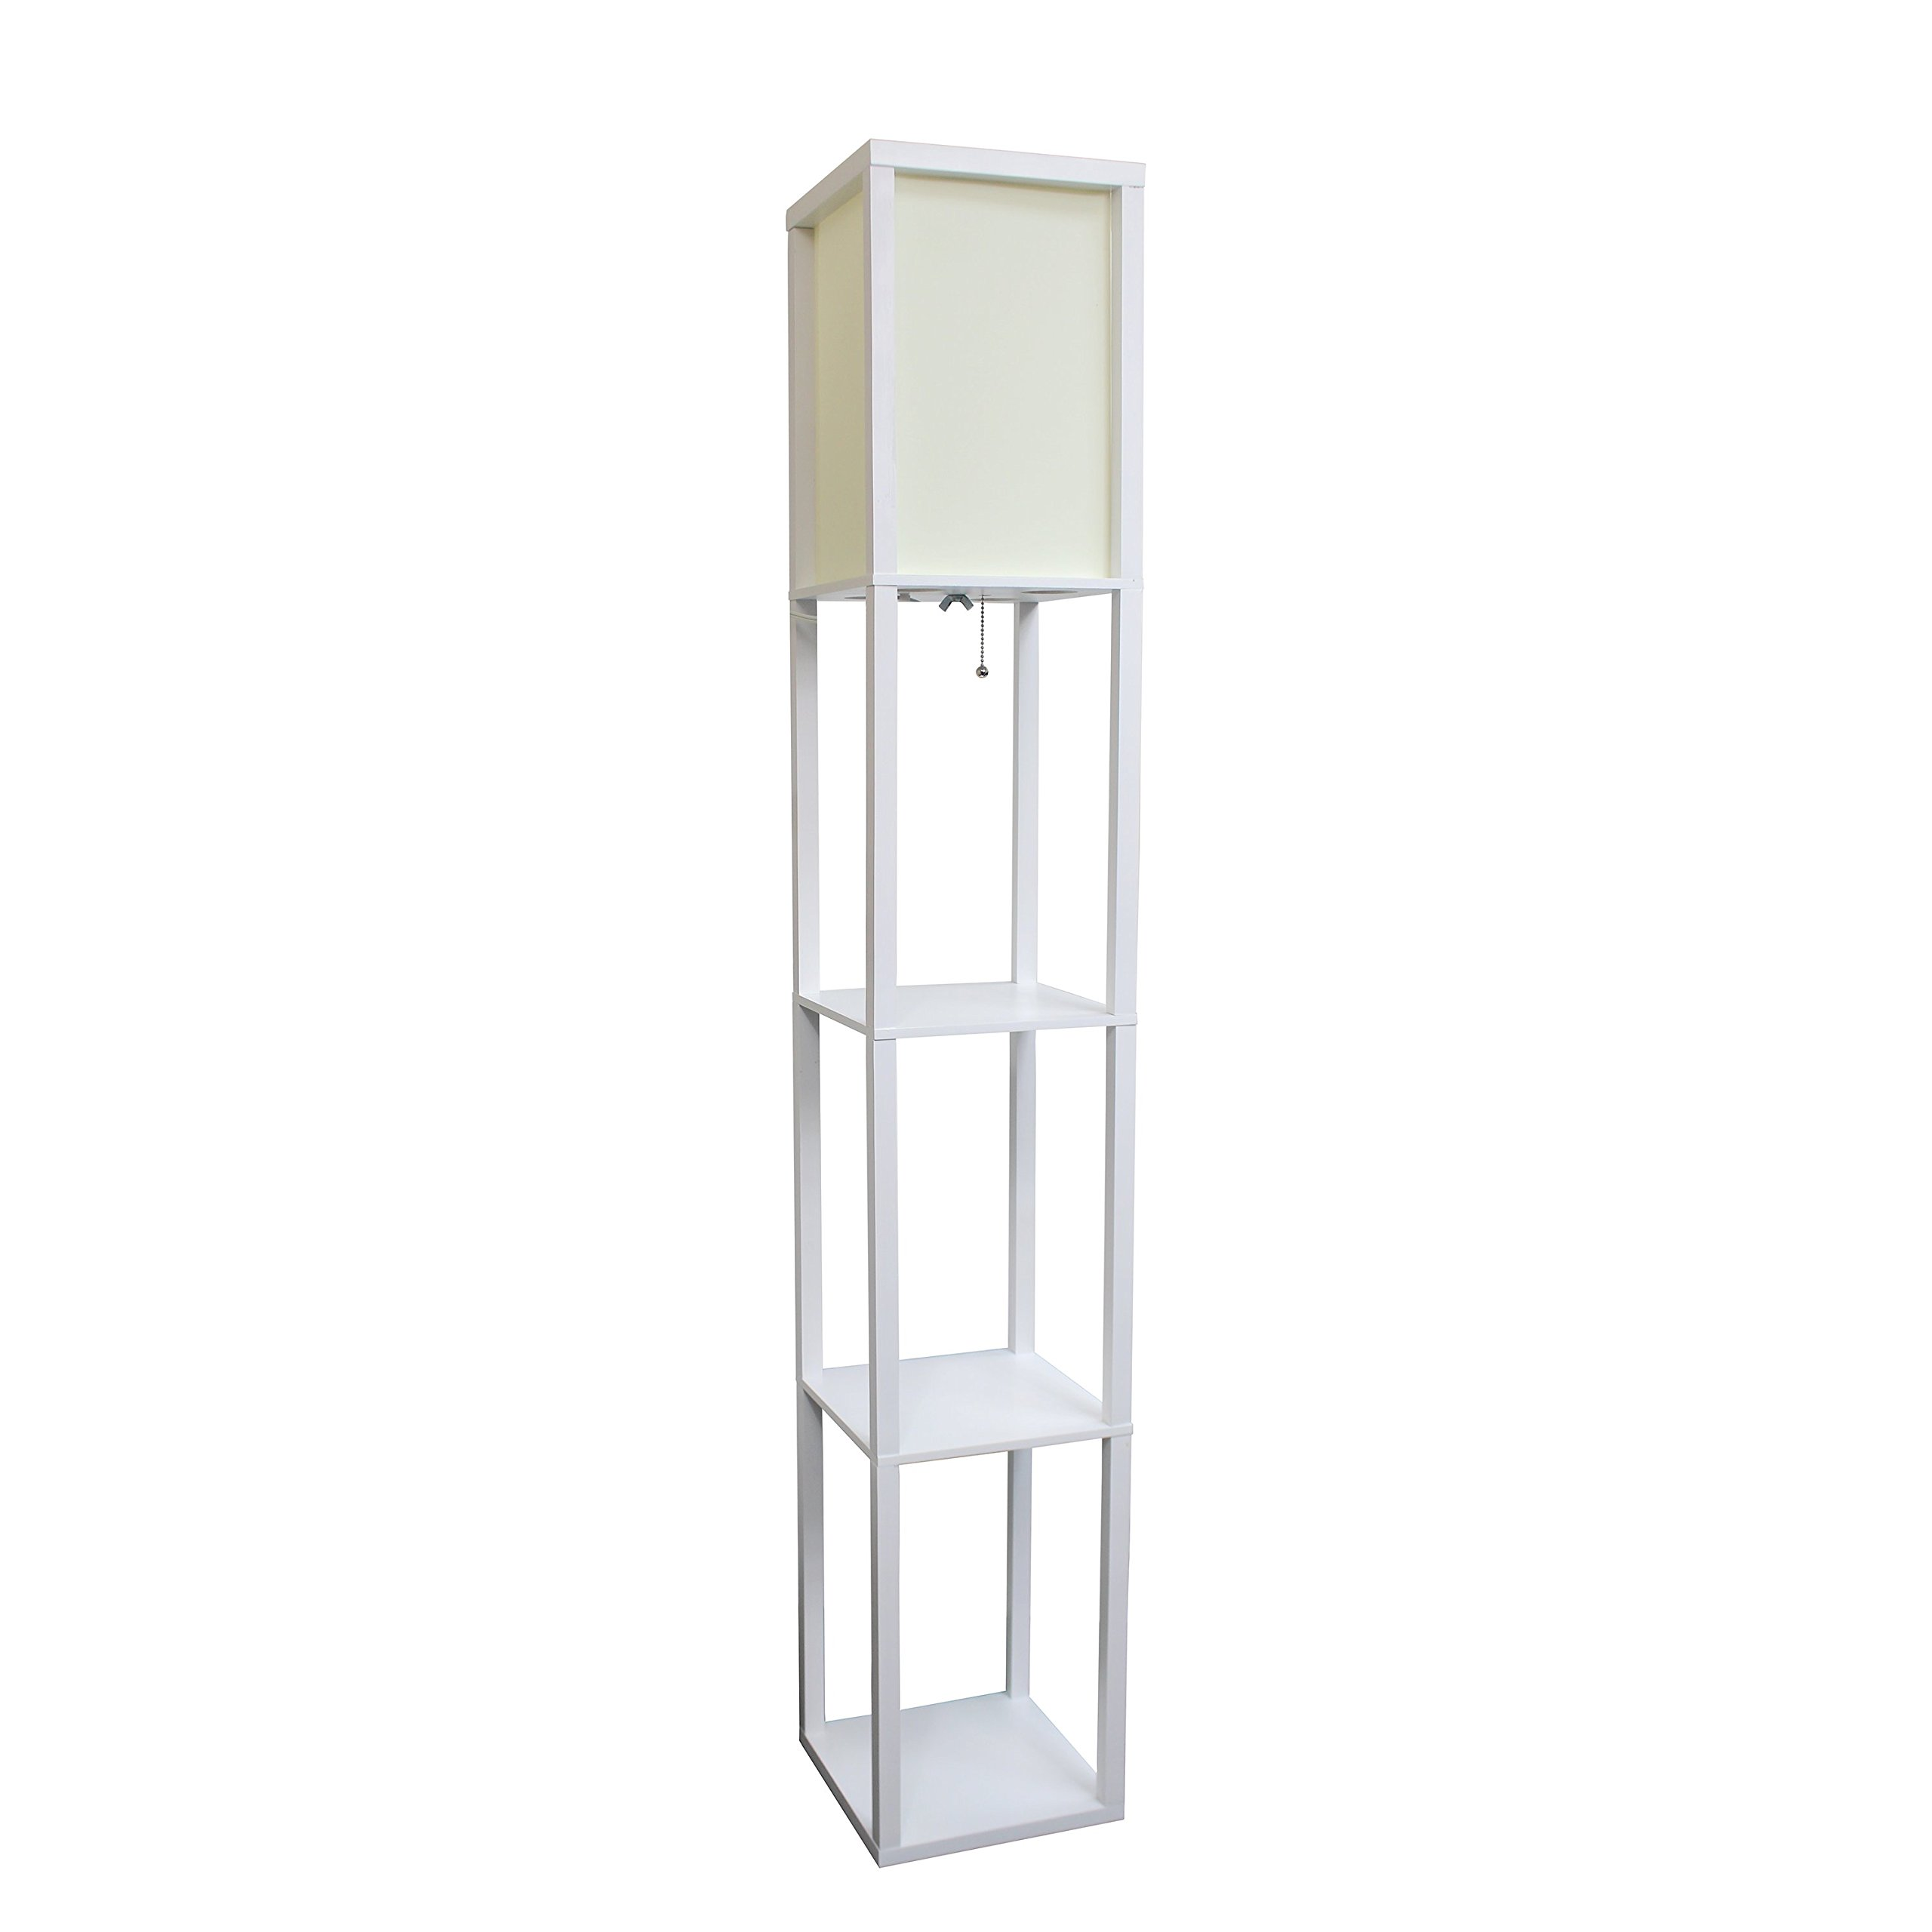 Simple Designs LF1014-WHT Floor Lamp Etagere Organizer Storage Shelf with Linen Shade, White